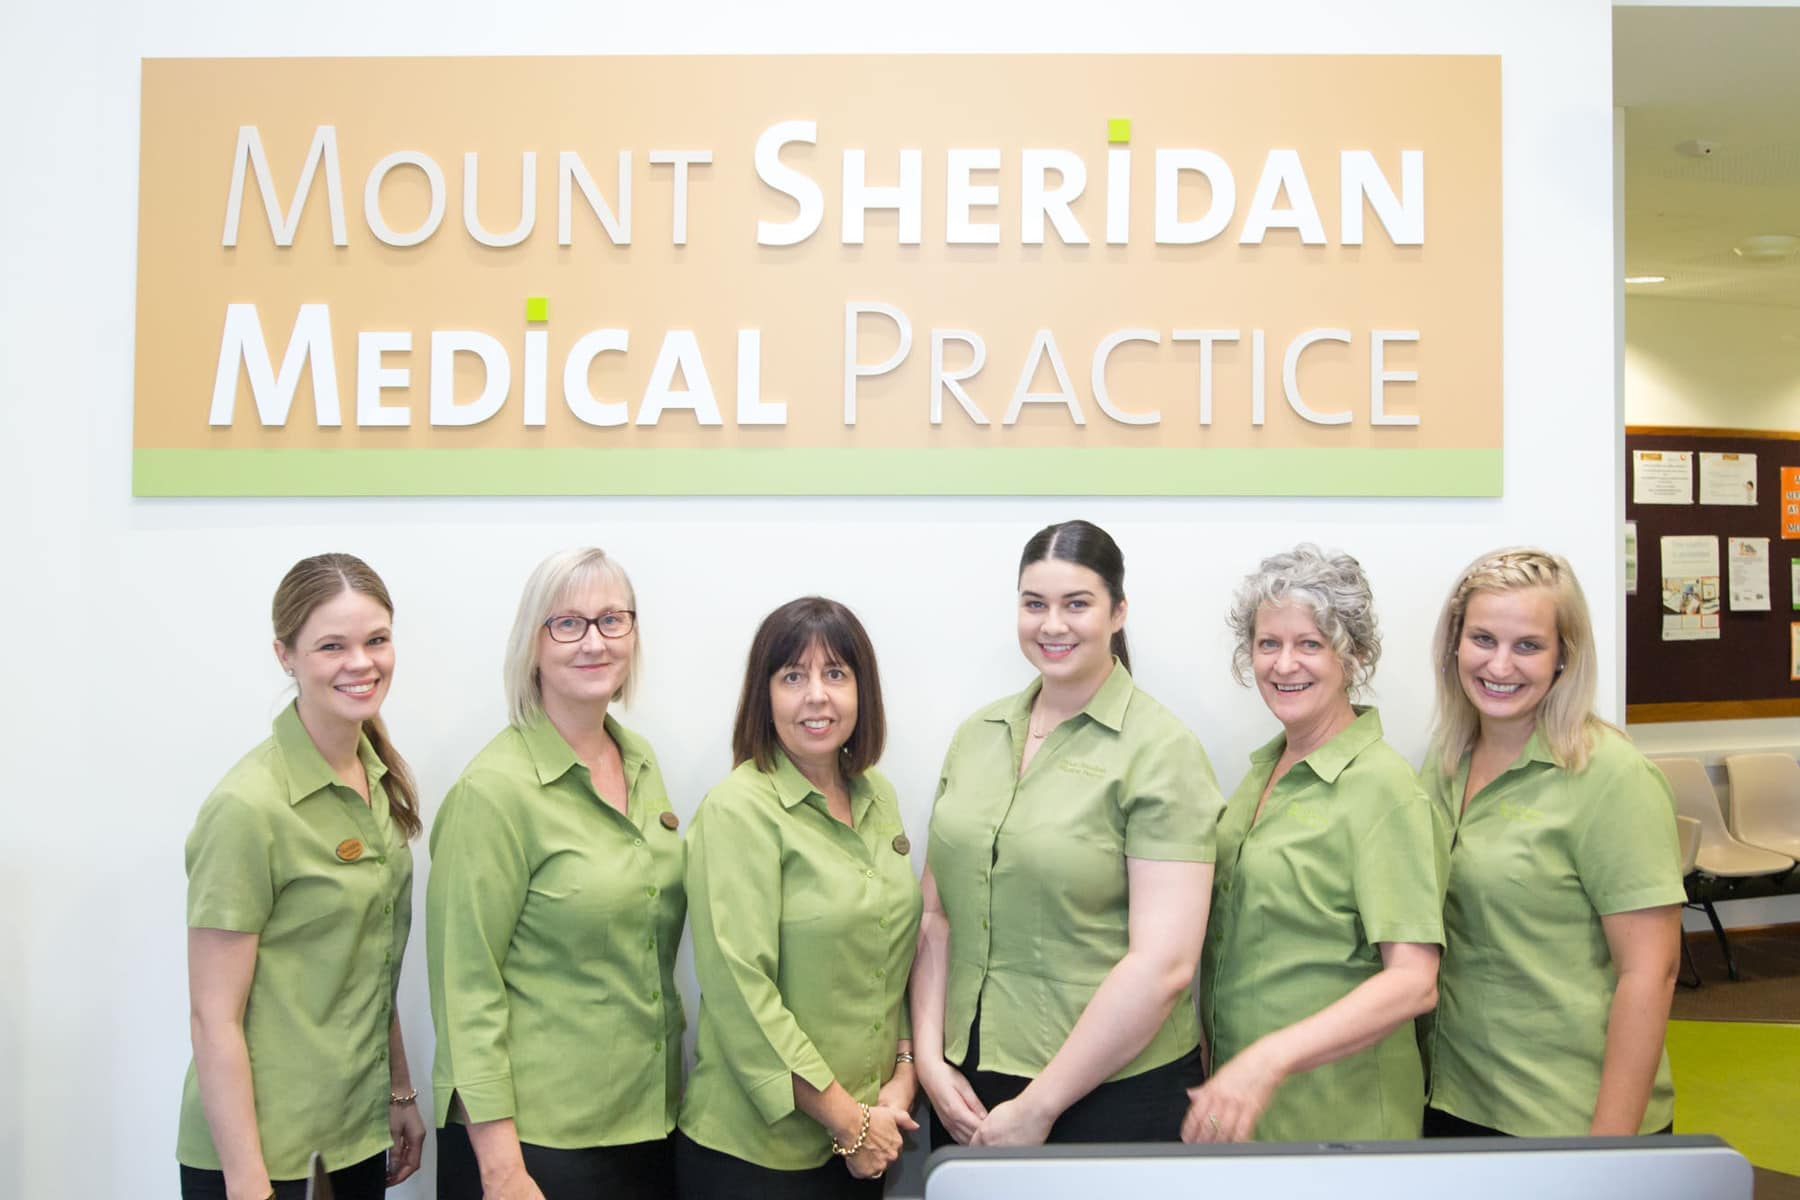 Mt Sheridan Medical Practice is an Accredited Practice